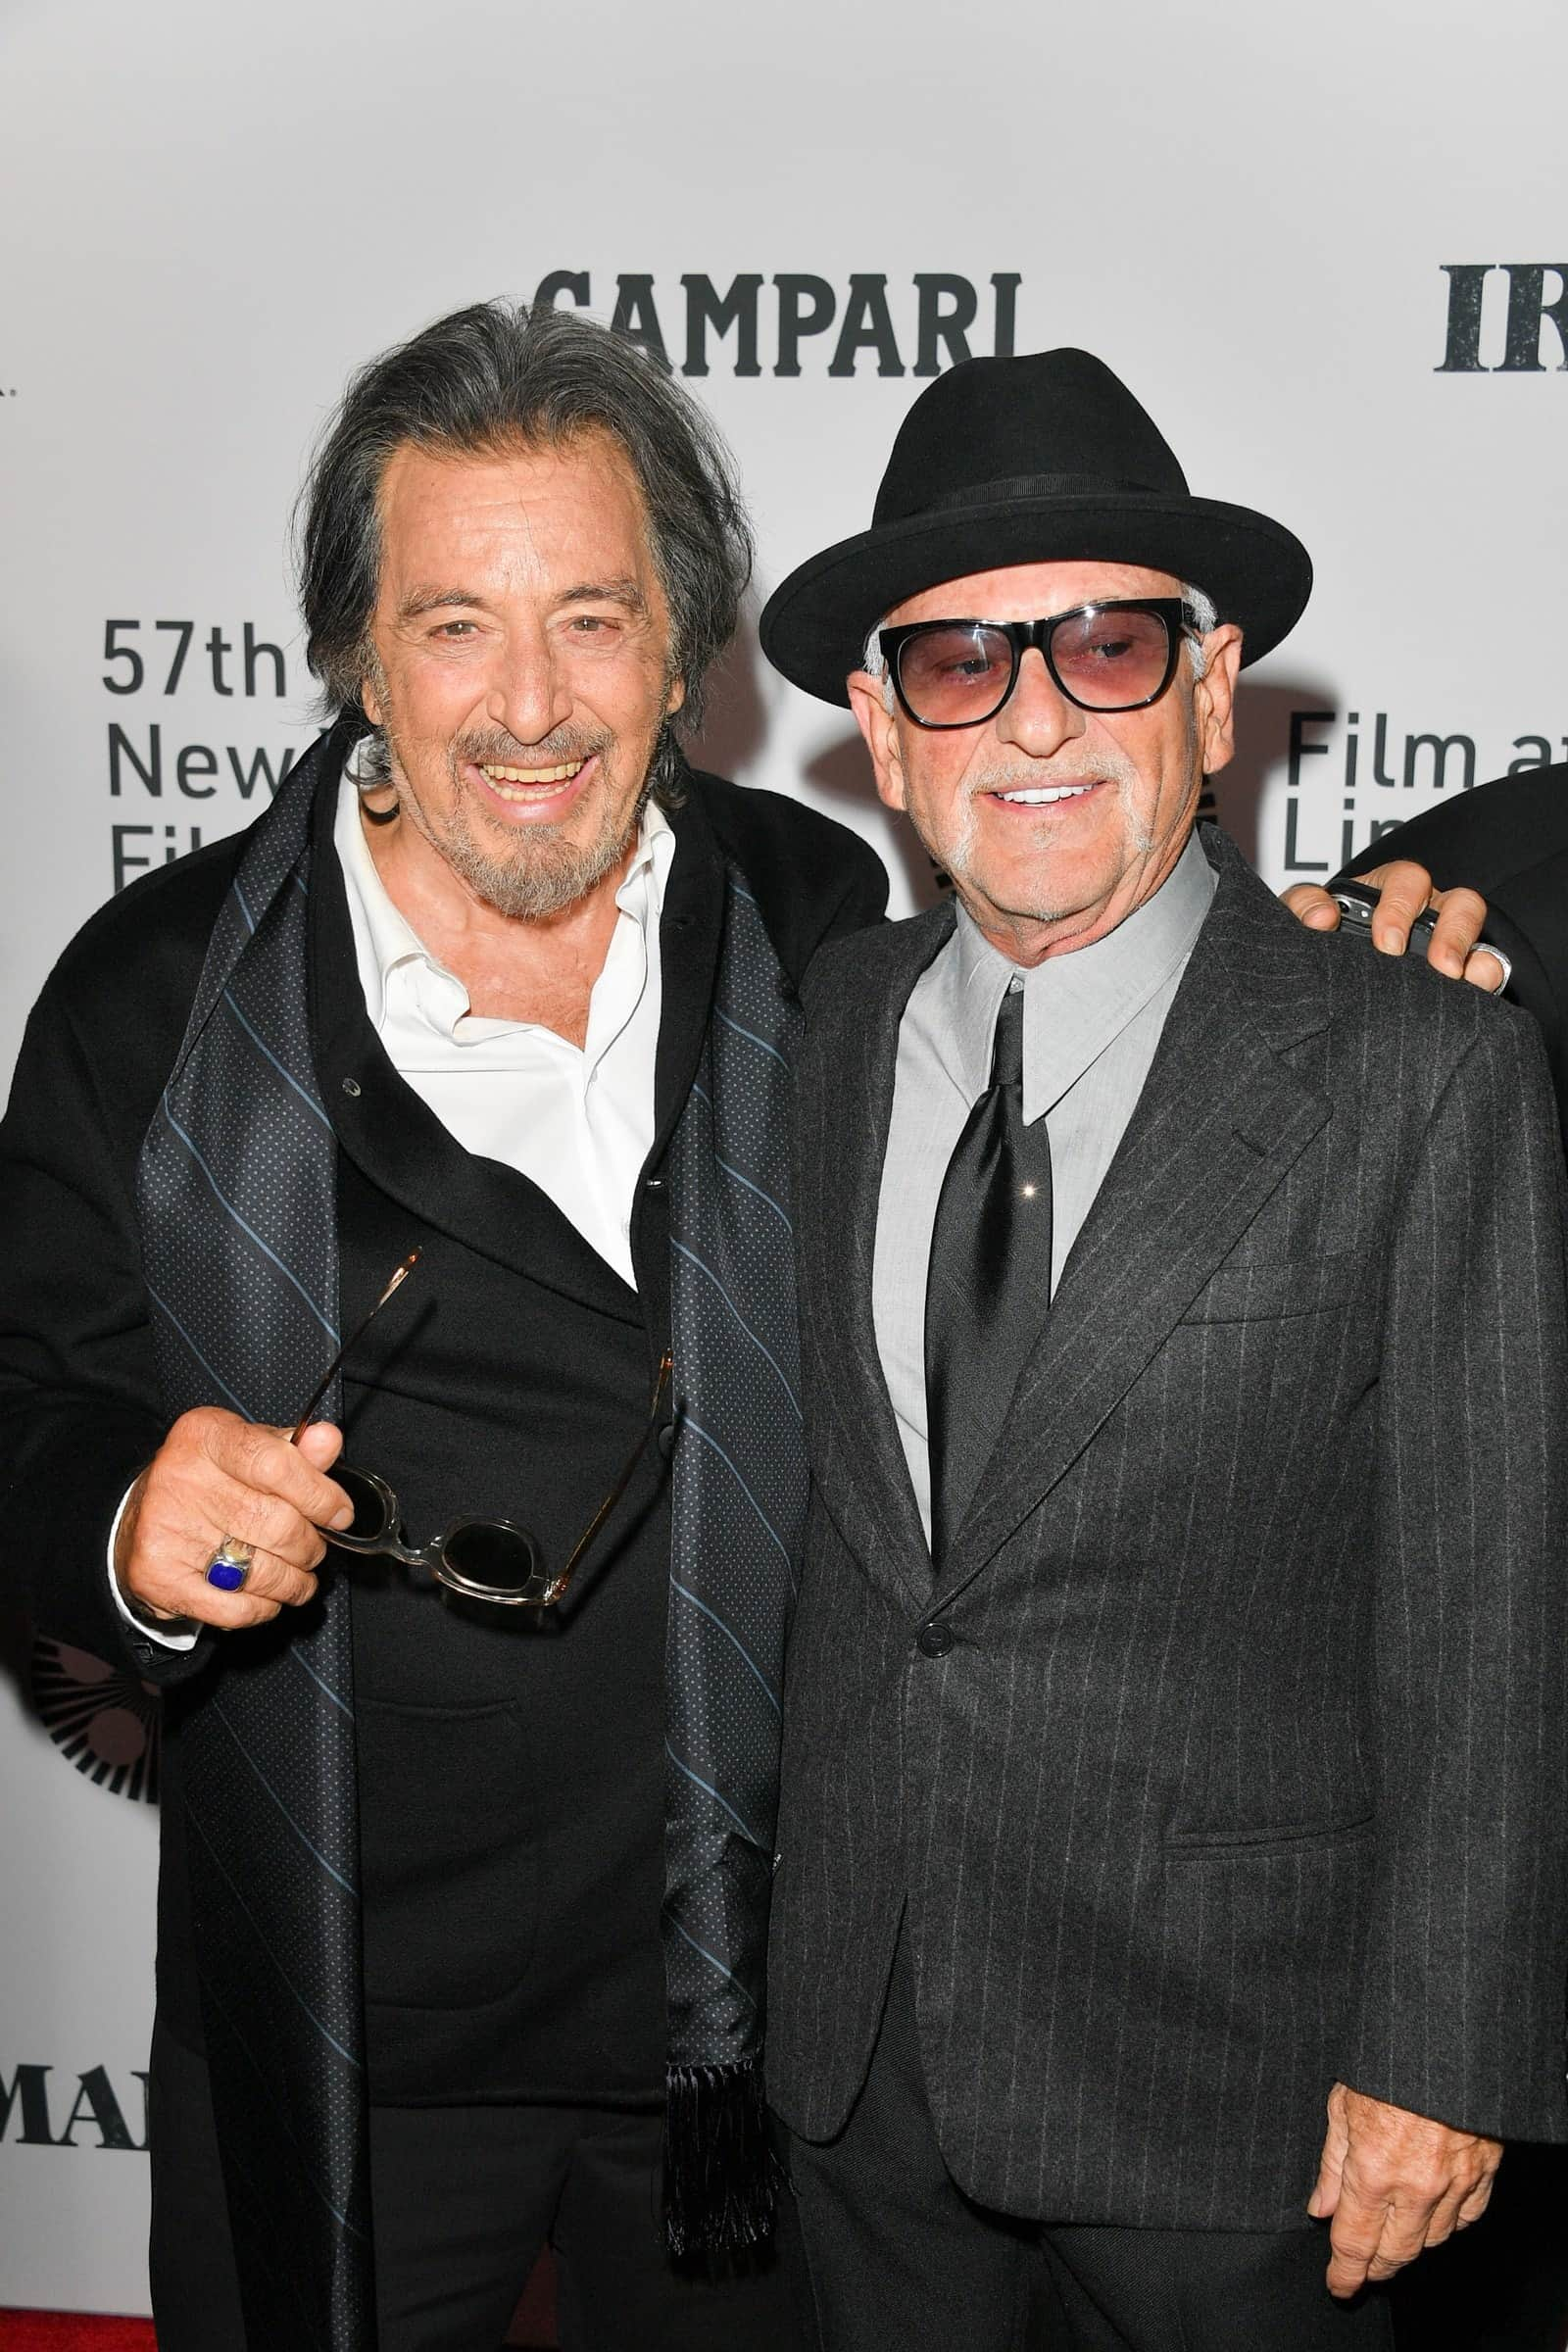 Joe Pesci S Height Family And Net Worth Everything You Want To Know #impracticaljokers is easily my favorite show. joe pesci s height family and net